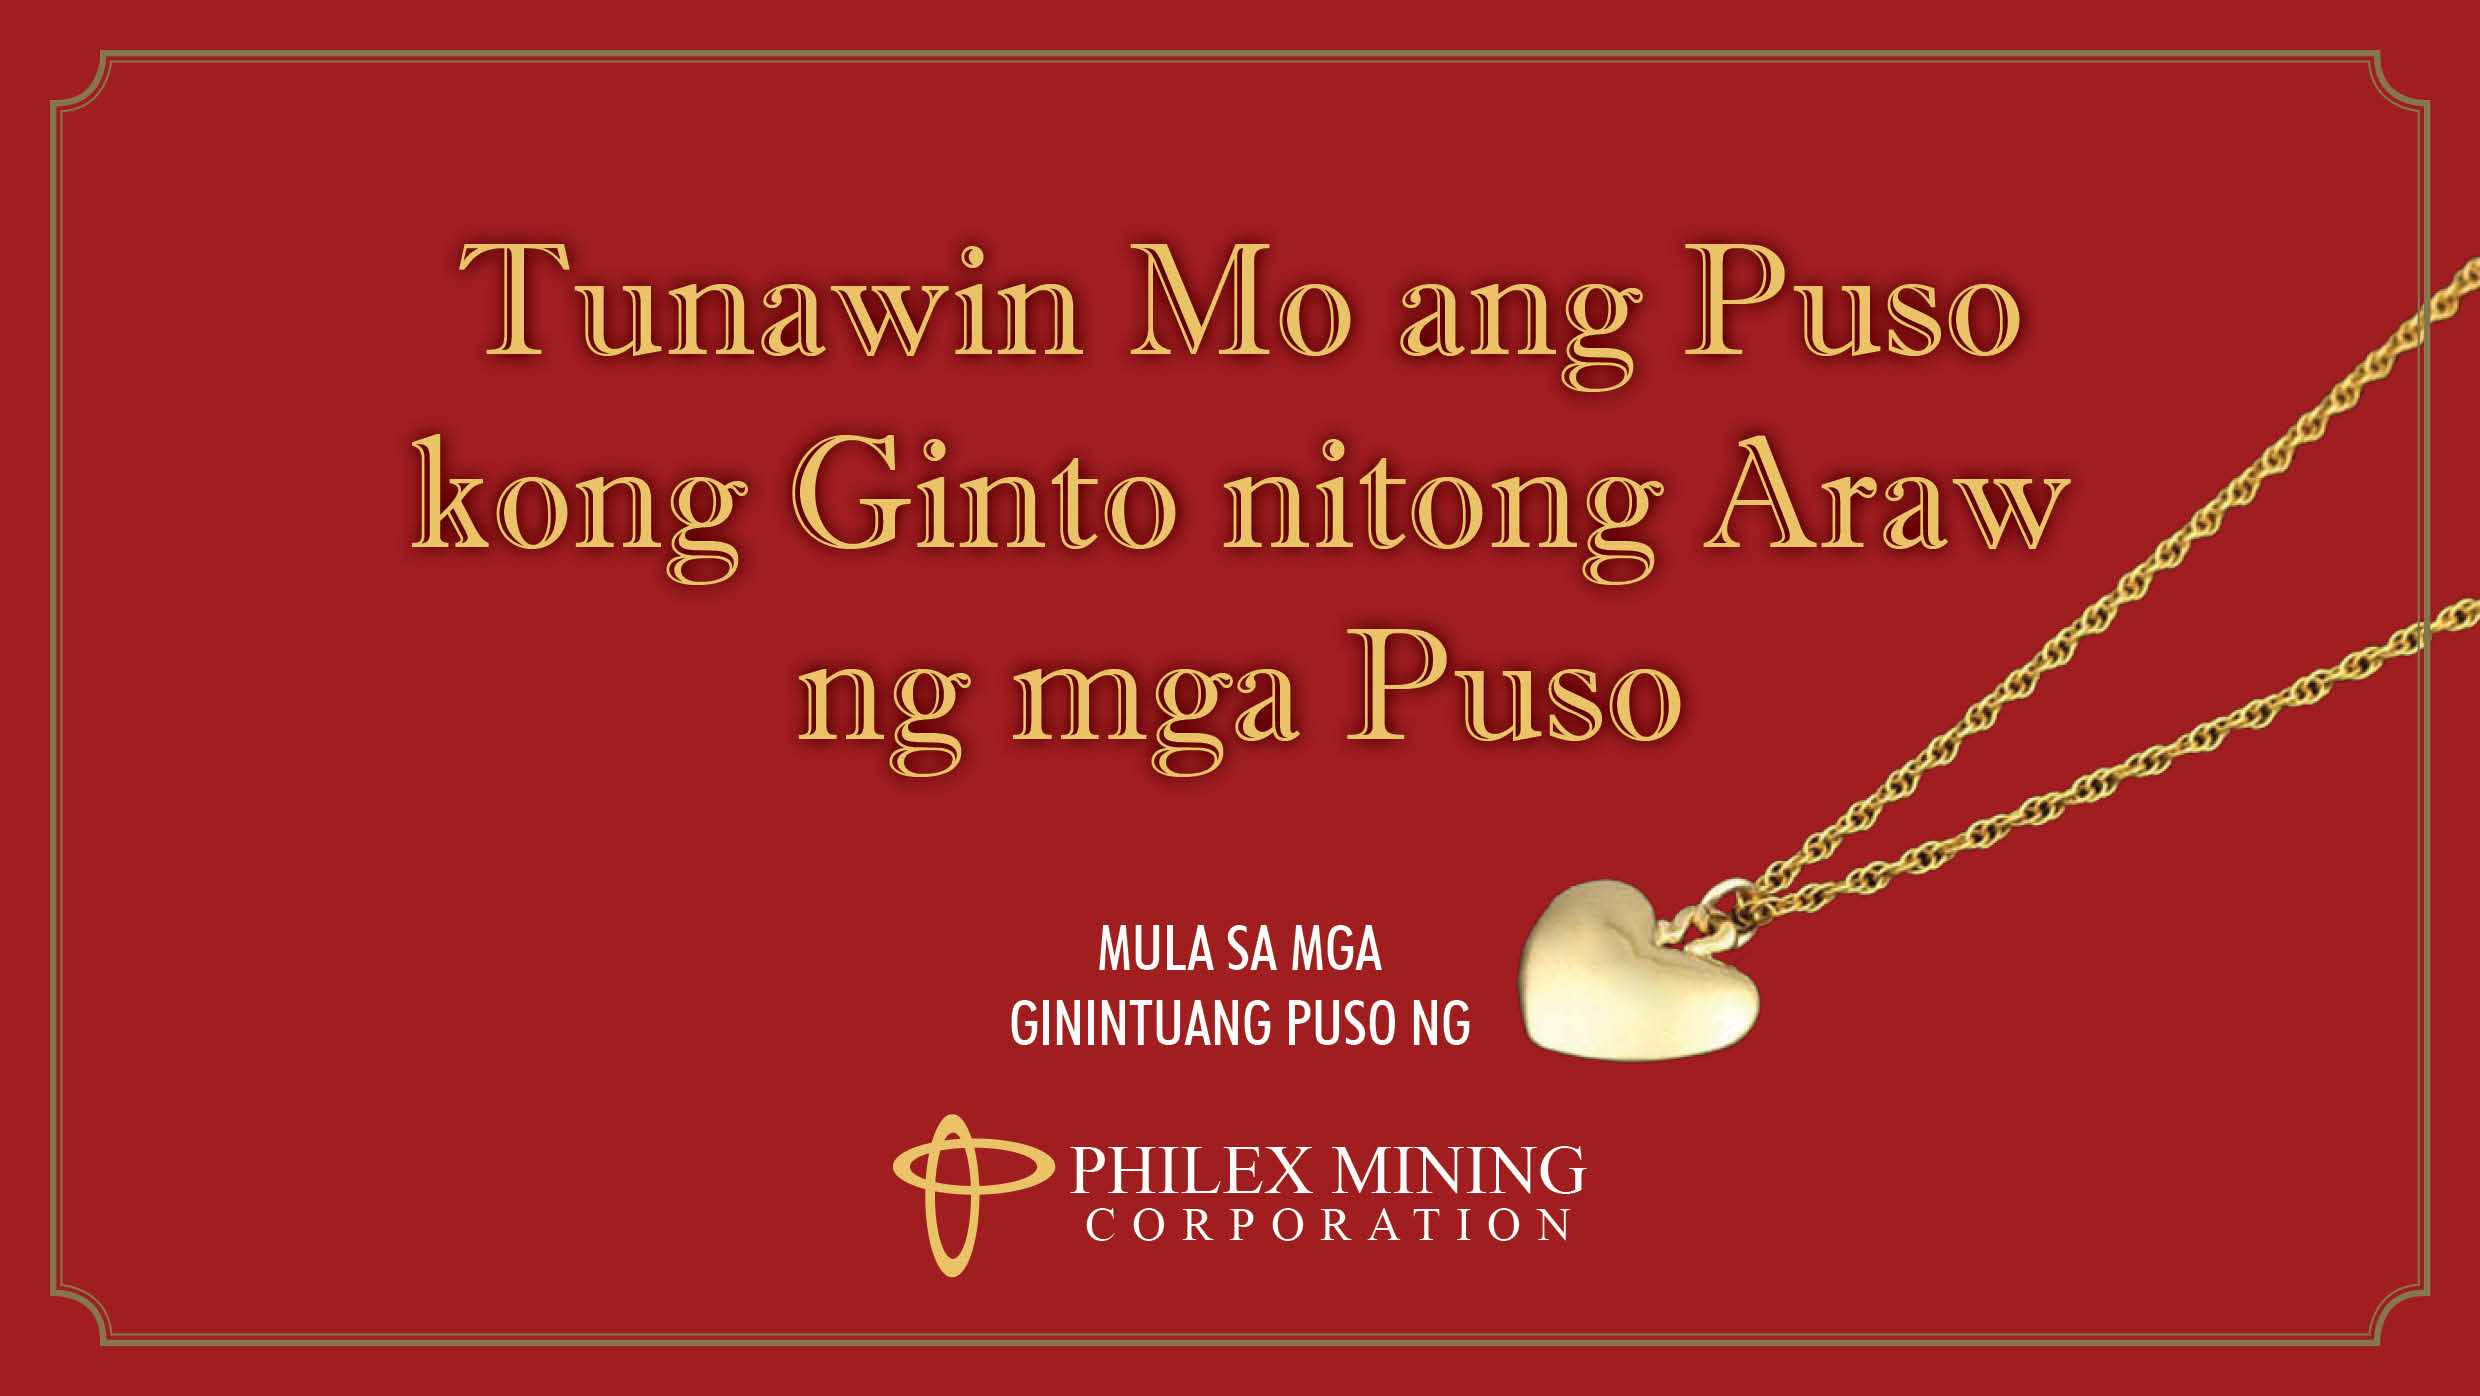 Happy Valentine's Day From Philex!